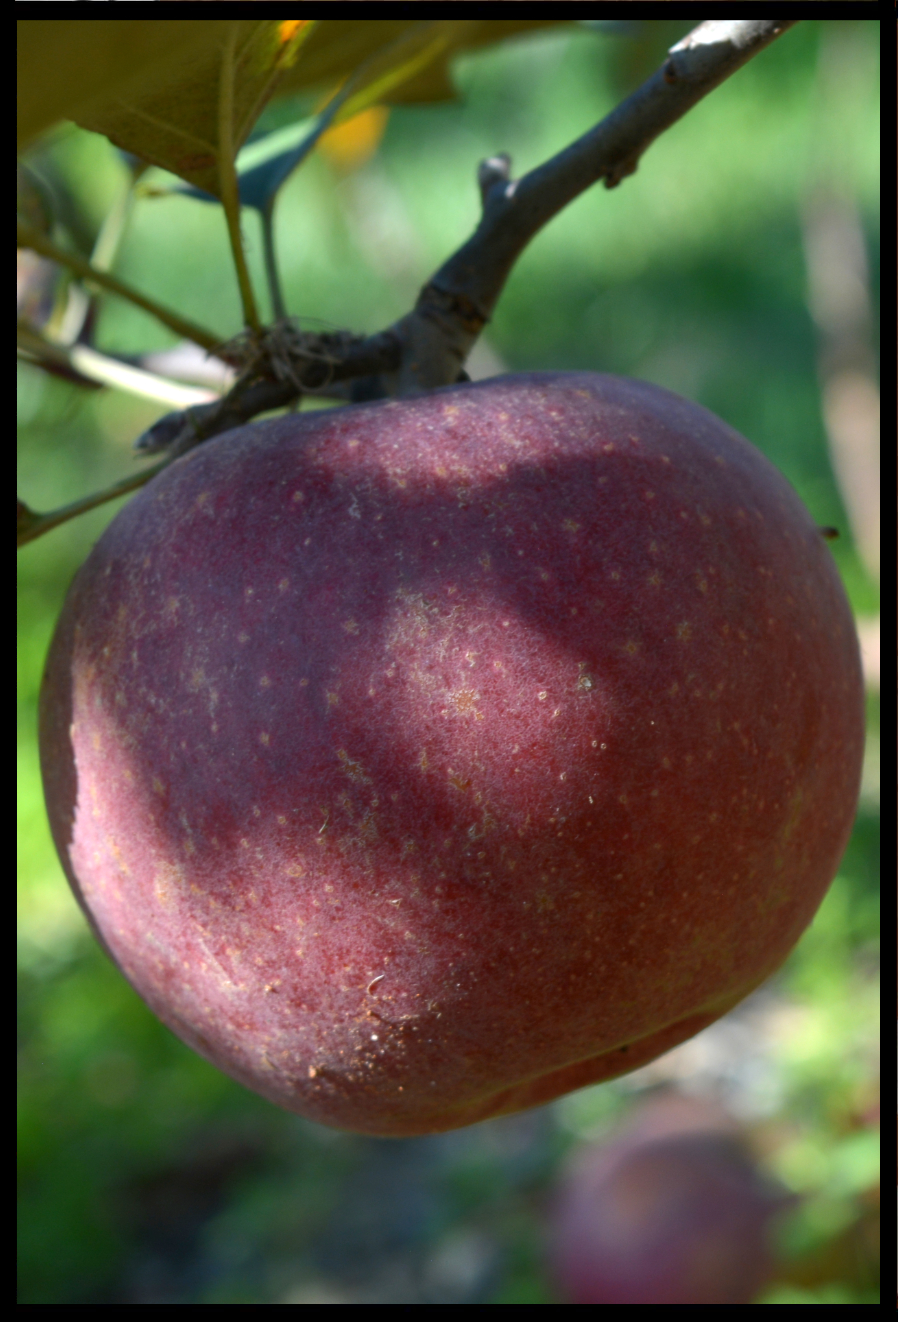 dark red apple with numerous small yellow spots